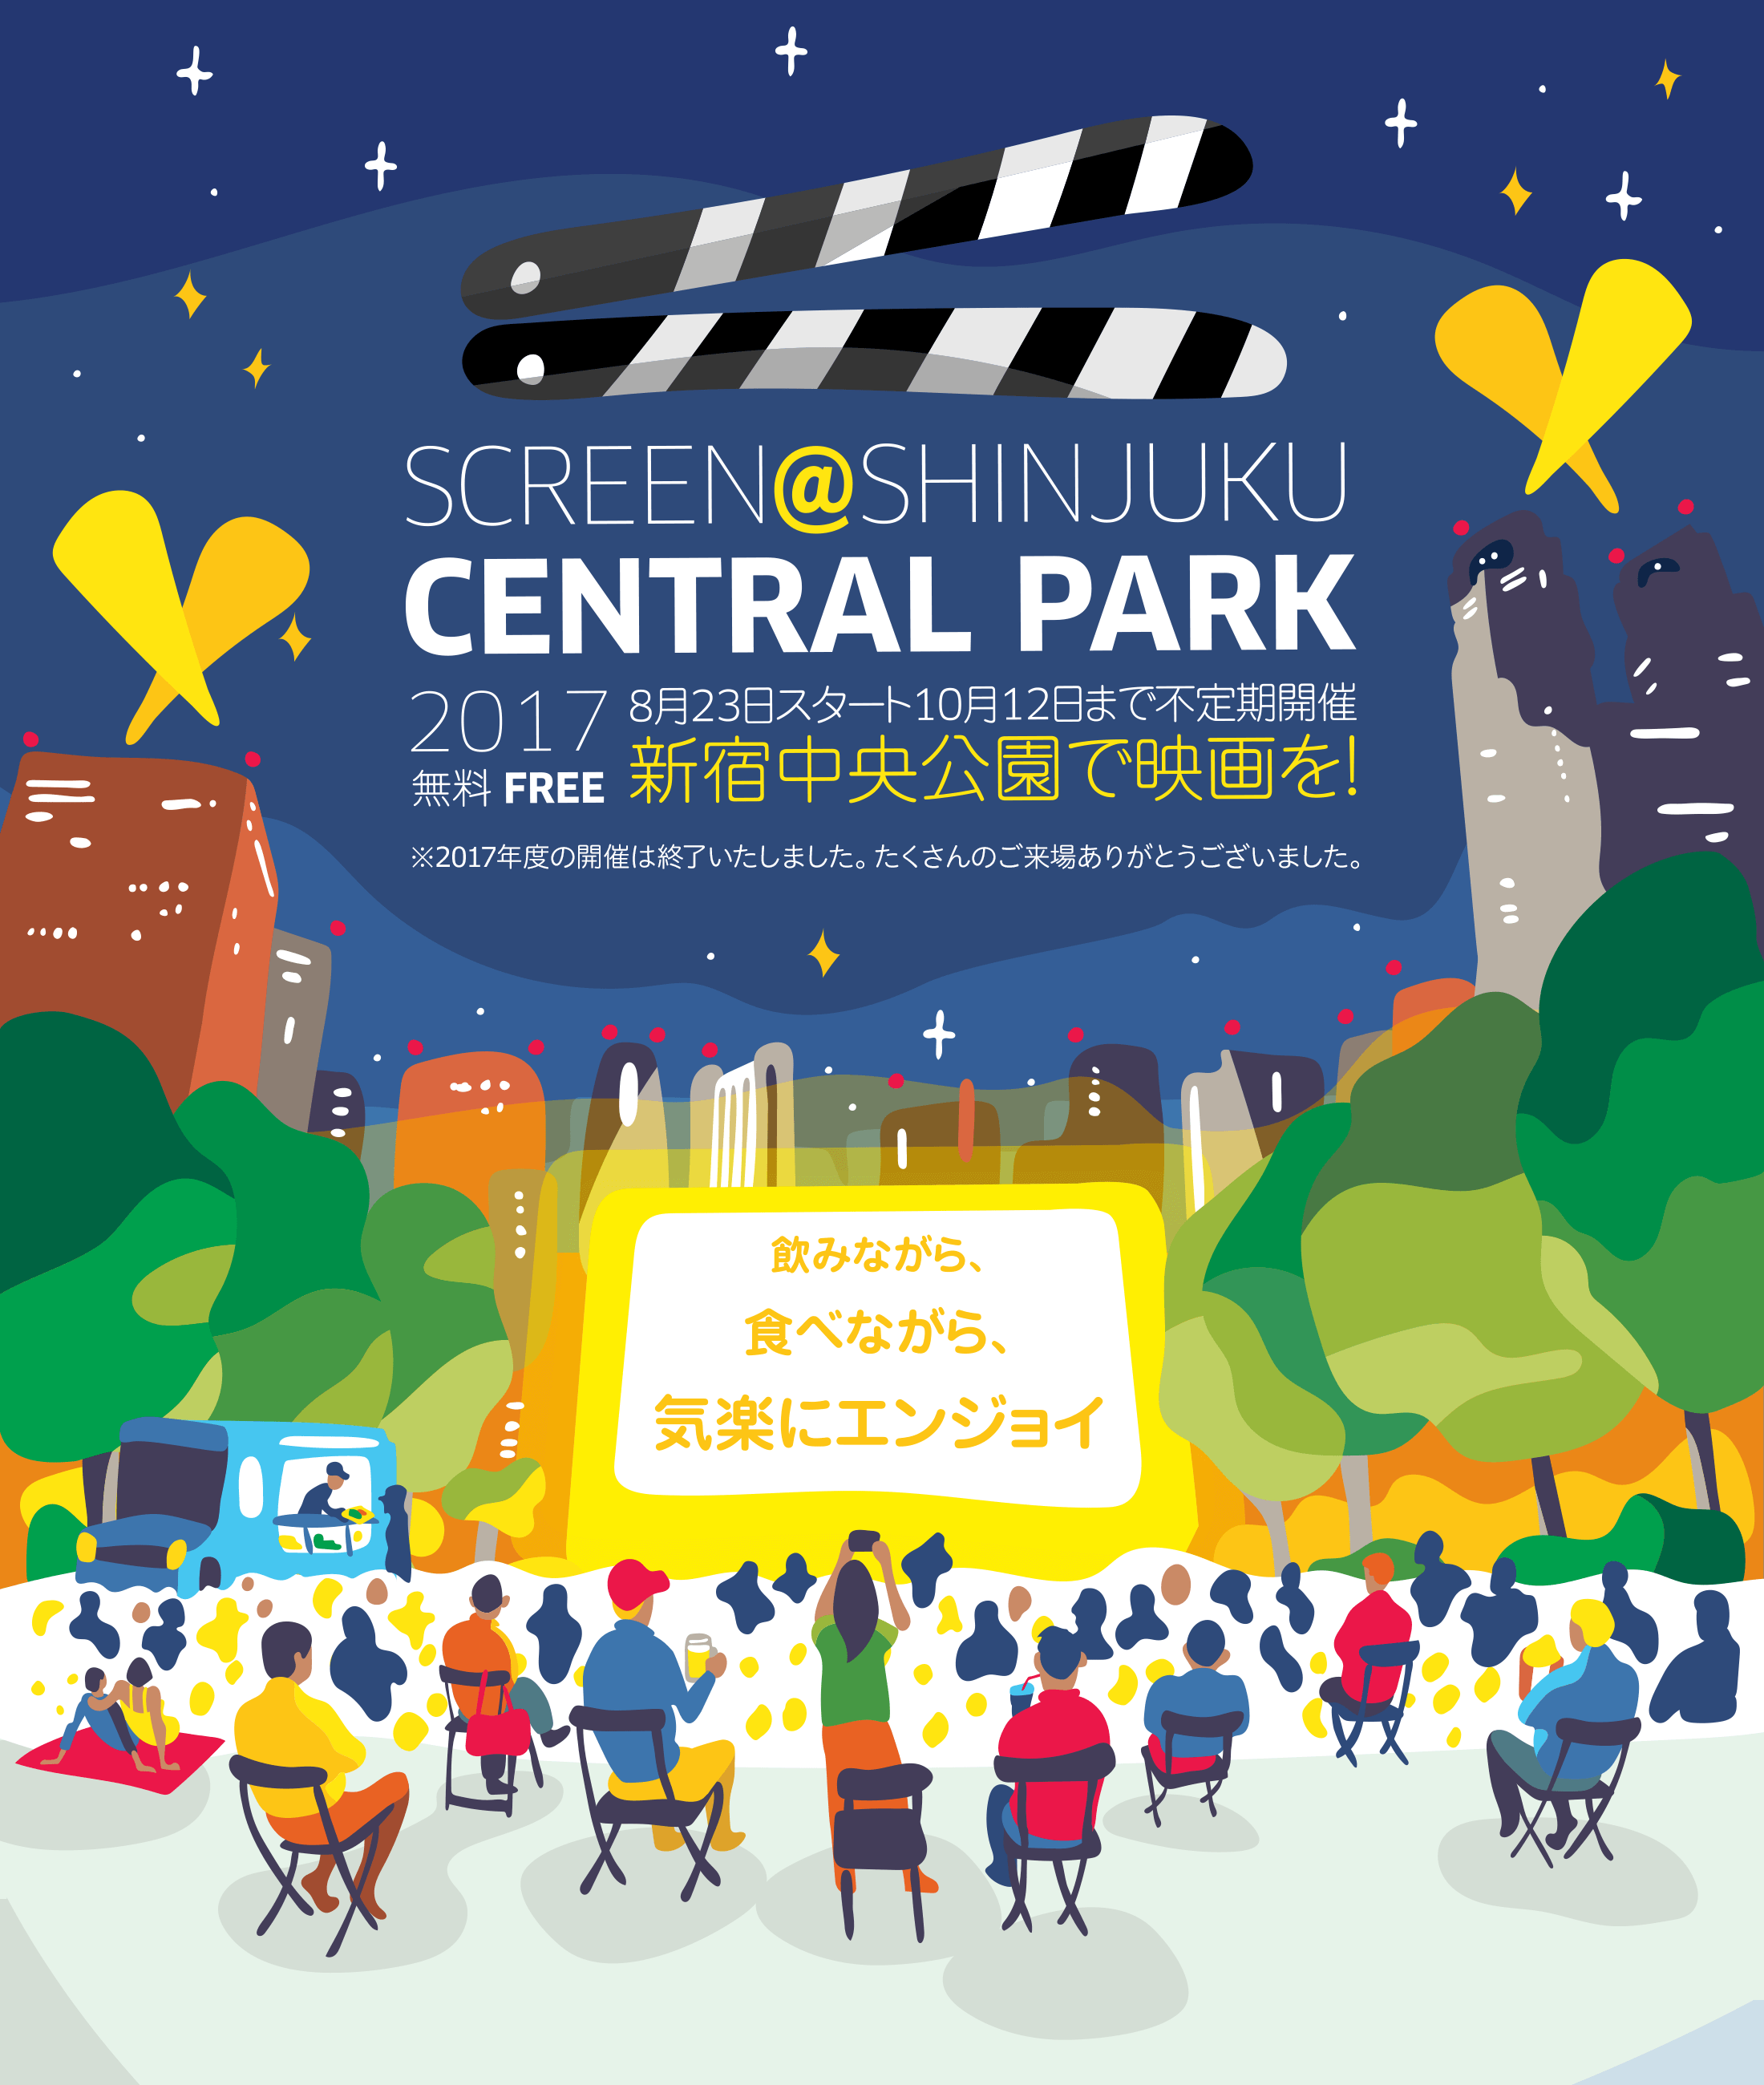 SCREEN @ SHINJUKU CENTRAL PARK 2017/8月23日スタート10月12日まで不定期開催/新宿中央公園で映画を!